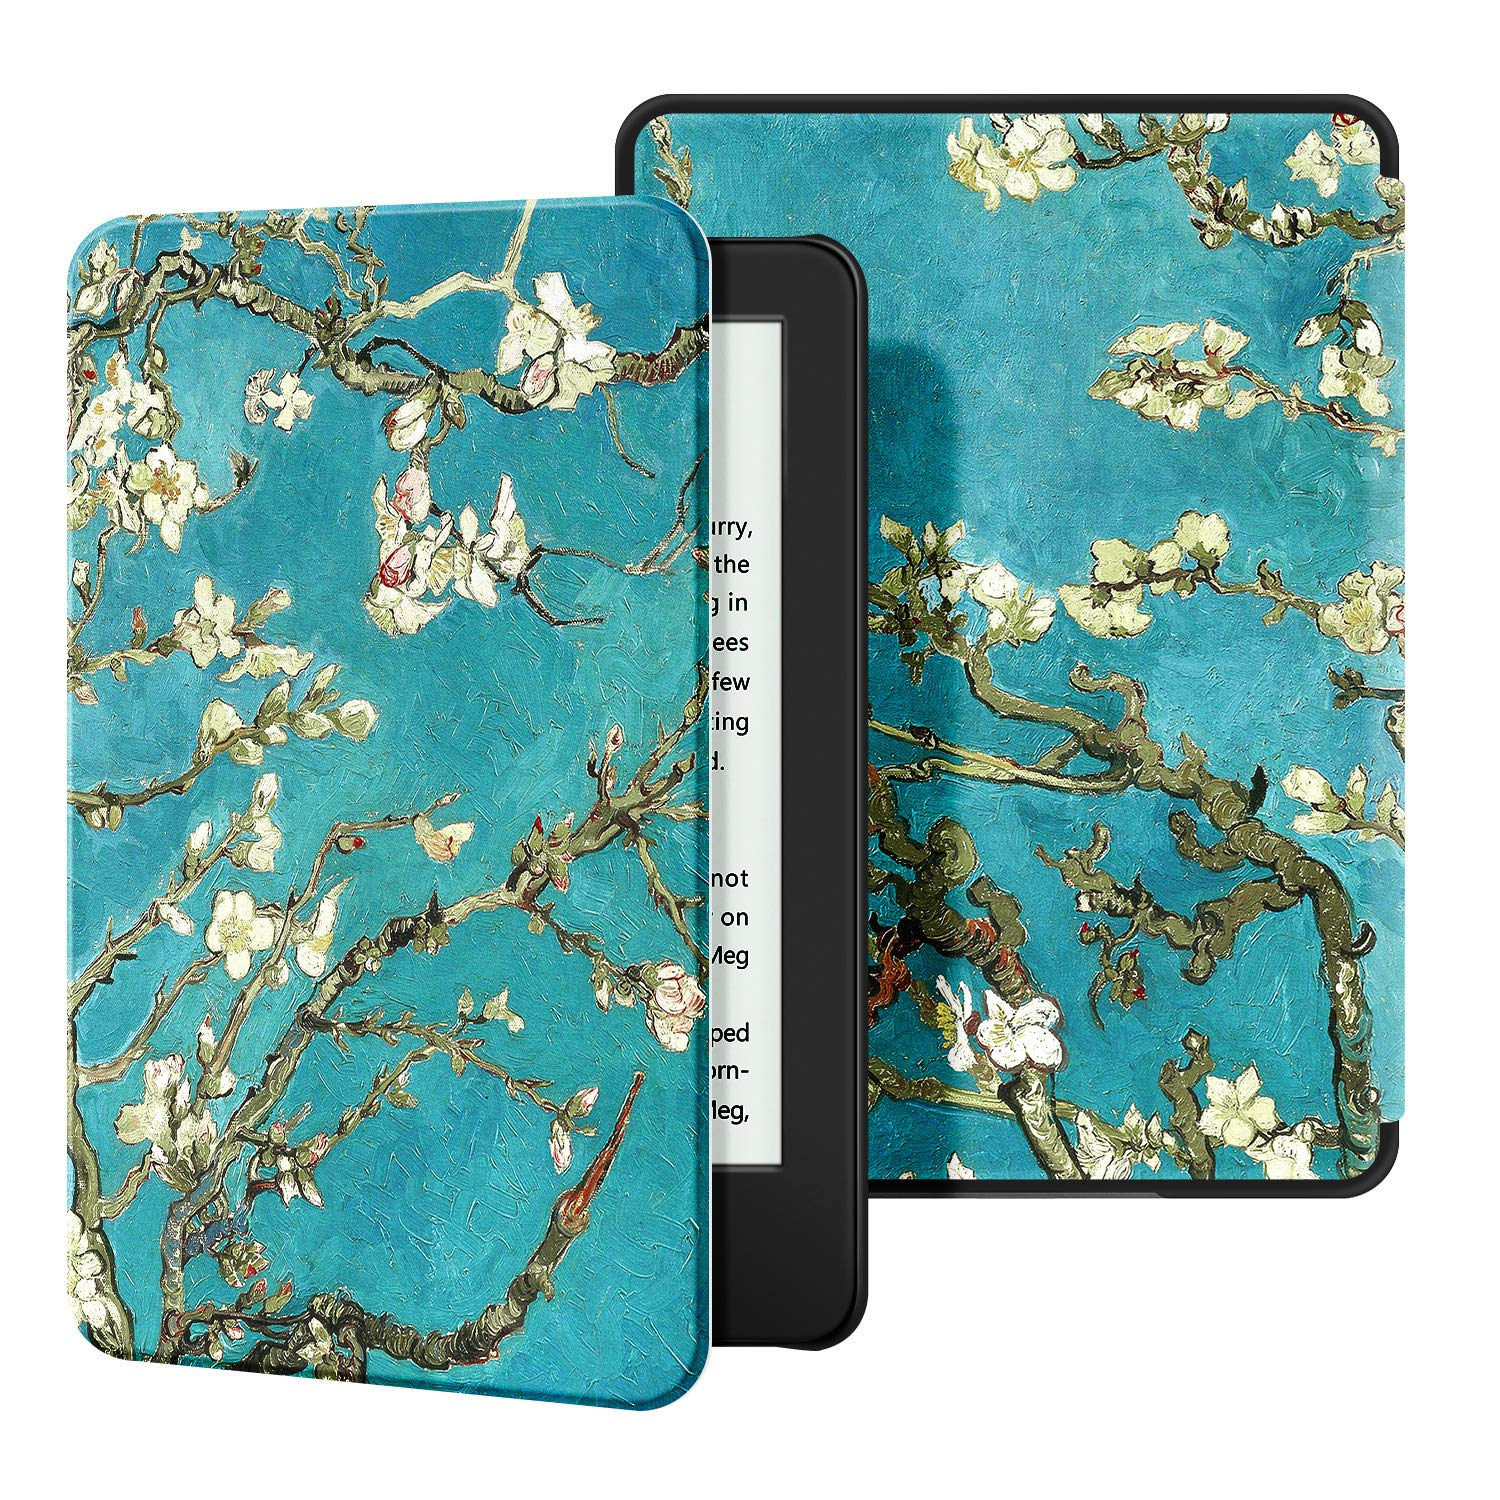 Ayotu Slim Case for All-New Kindle(10th Gen, 2019 Release) - PU Leather Cover with Auto Wake/Sleep-Fits Amazon All-New Kindle 2019(Will not fit Kindle Paperwhite or Kindle Oasis),The Apricot Flower